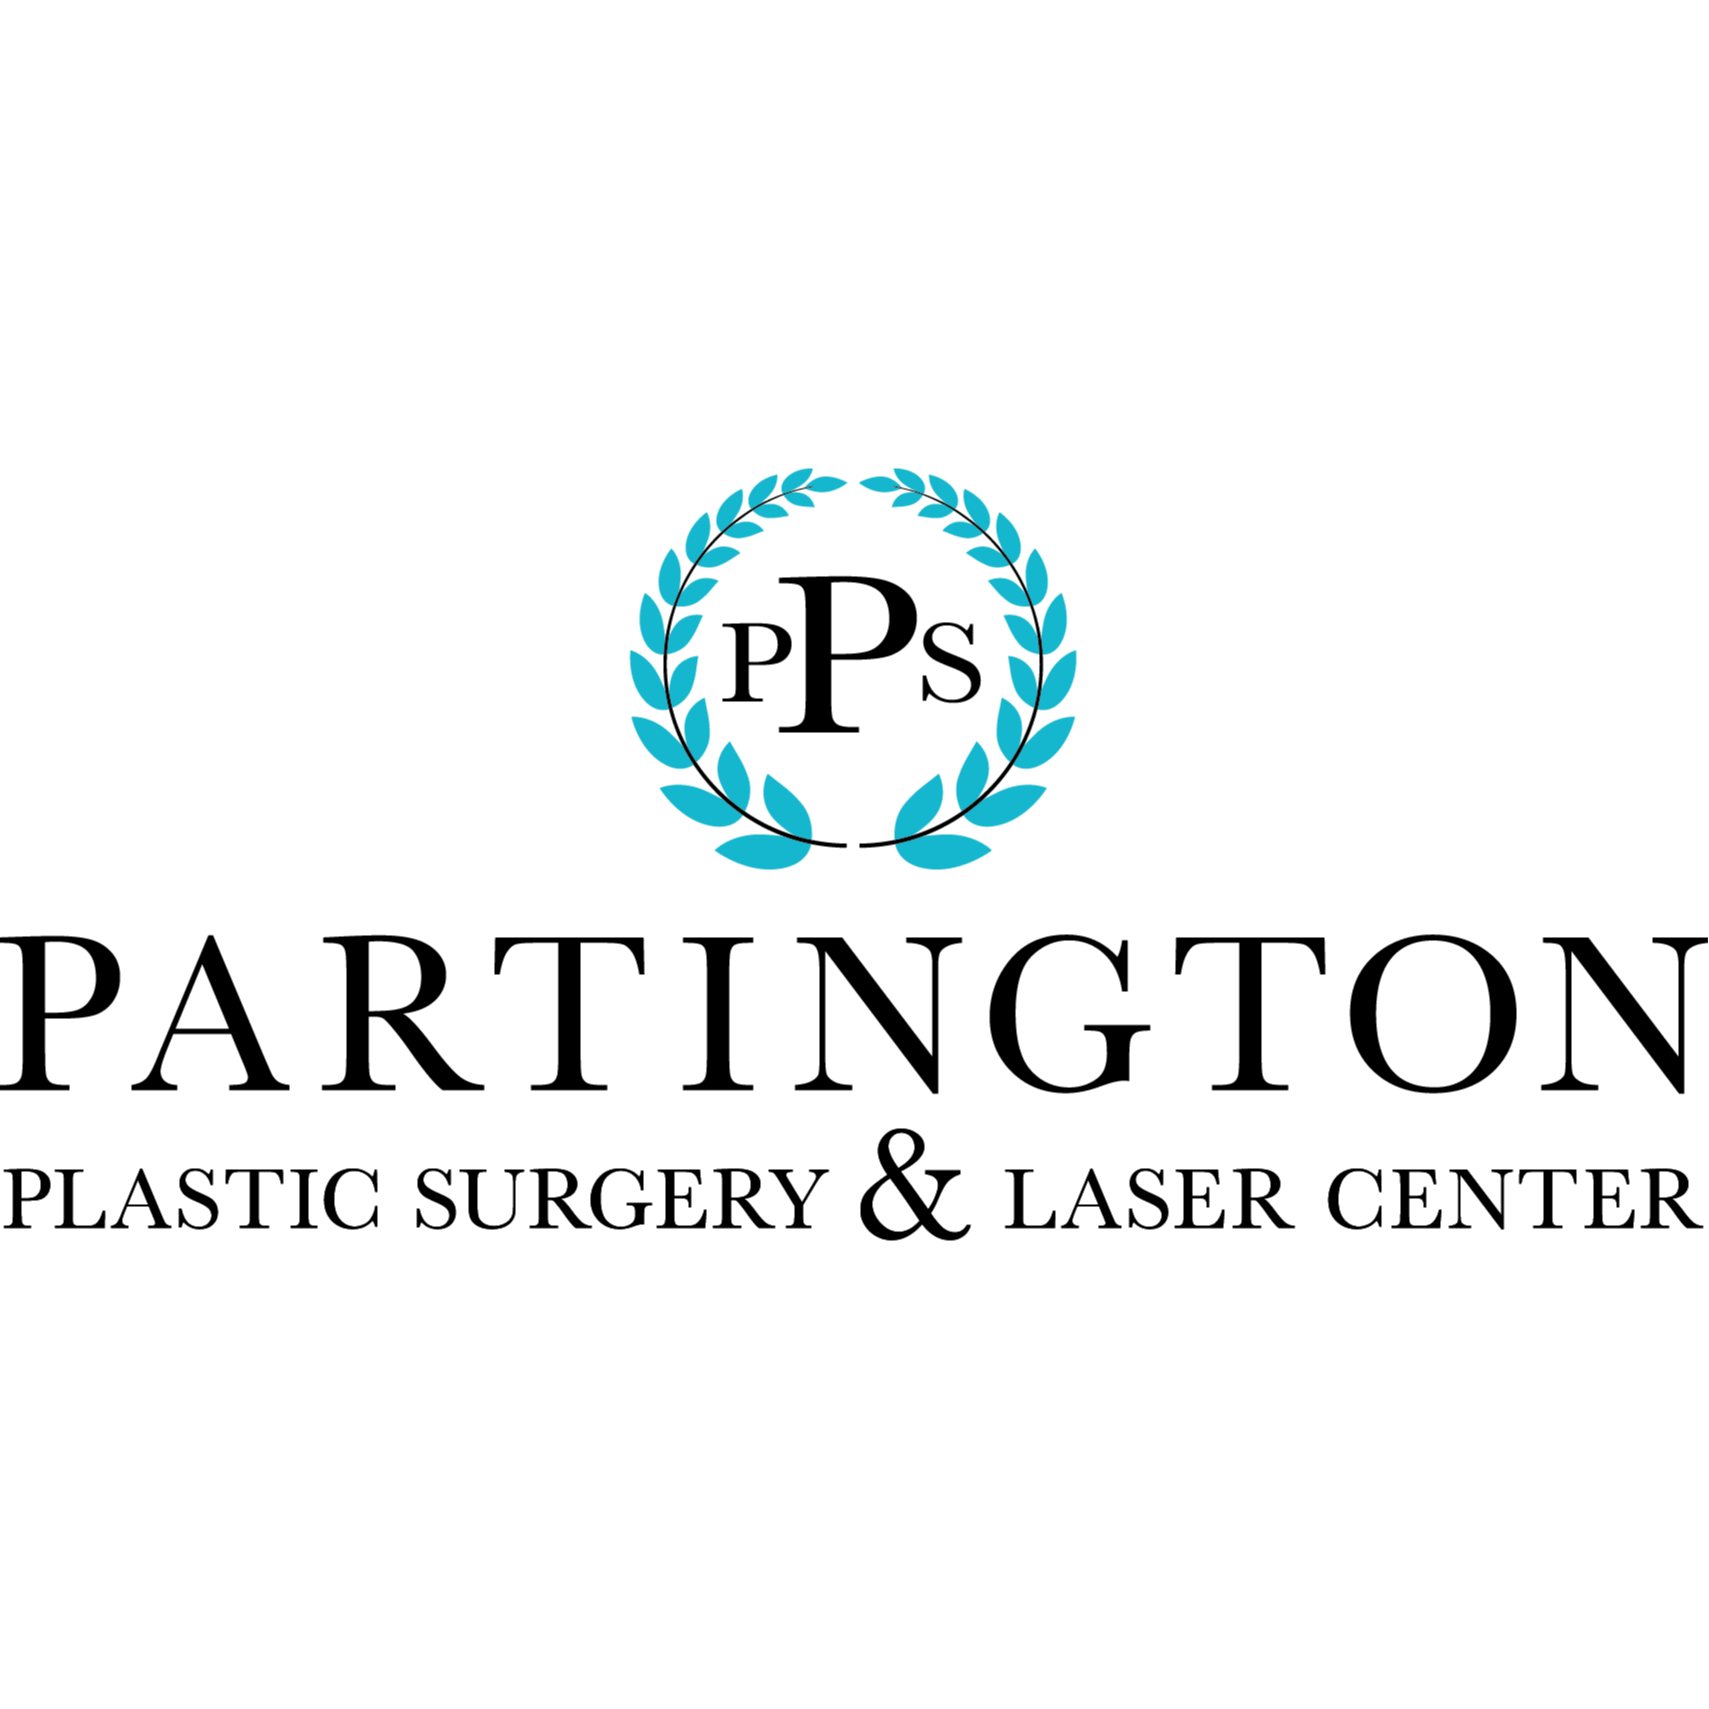 Partington Plastic Surgery 1 Hour Consultation